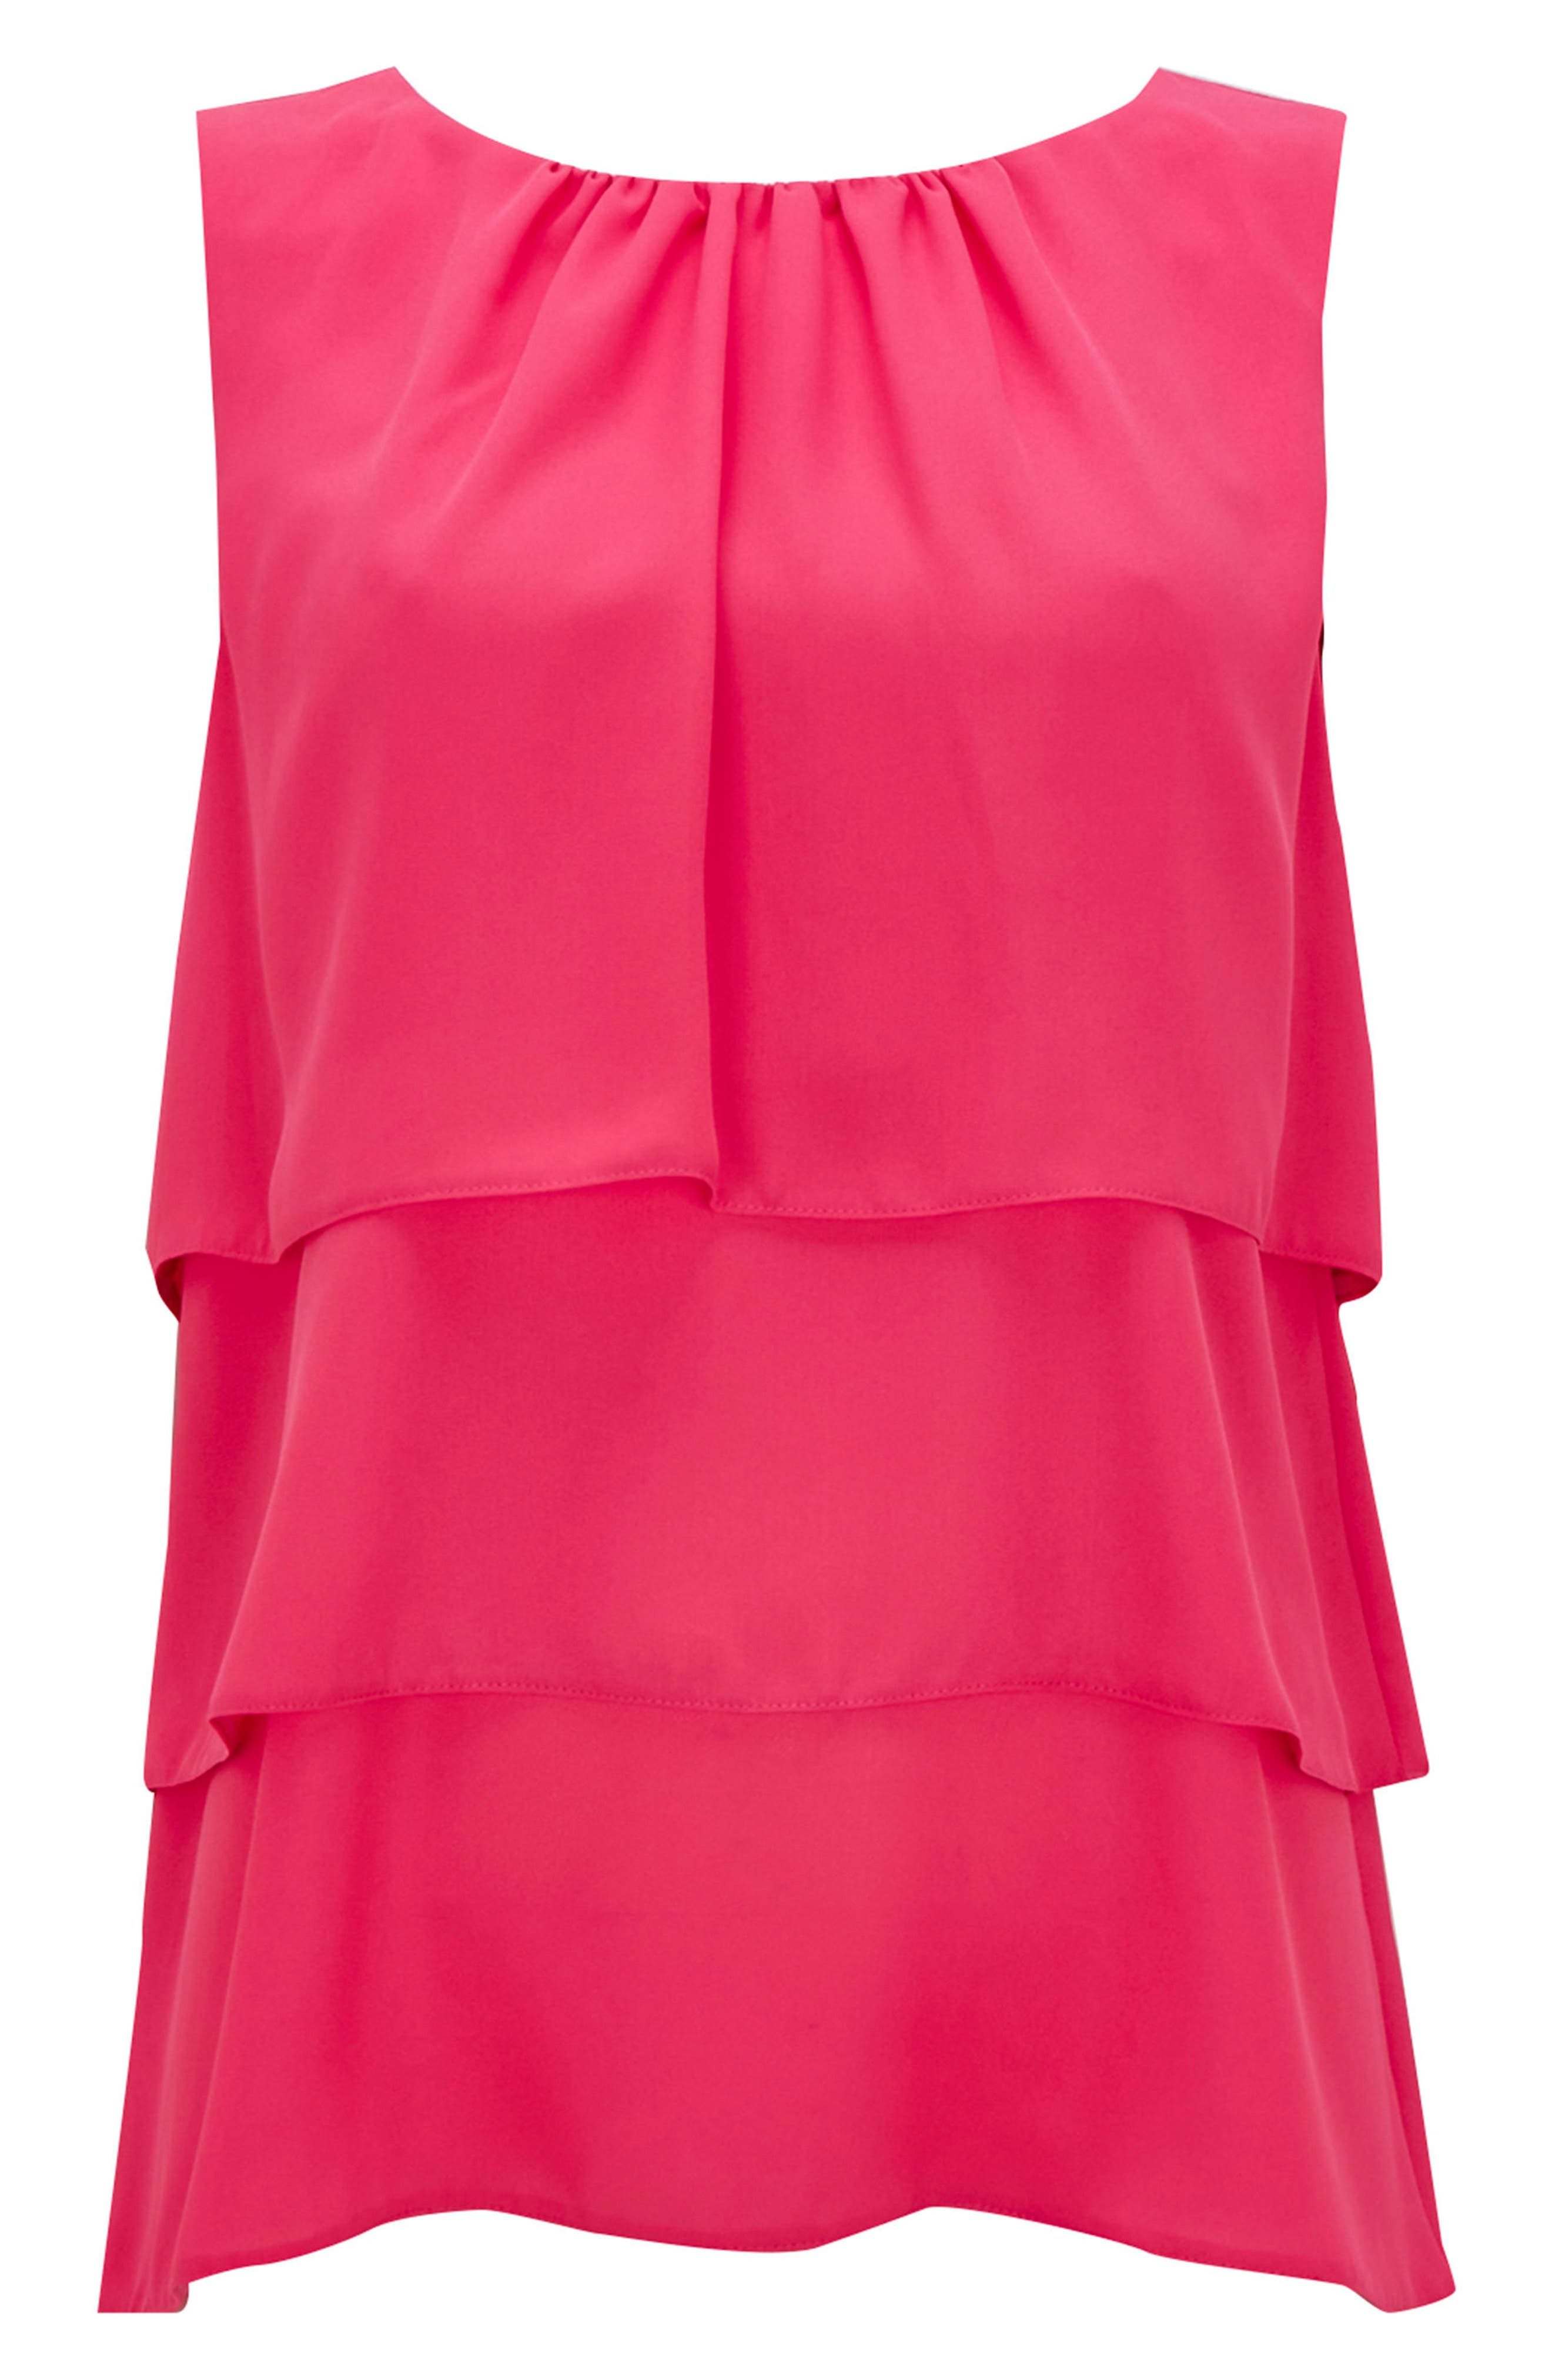 Tiered Sleeveless Top,                             Alternate thumbnail 4, color,                             650